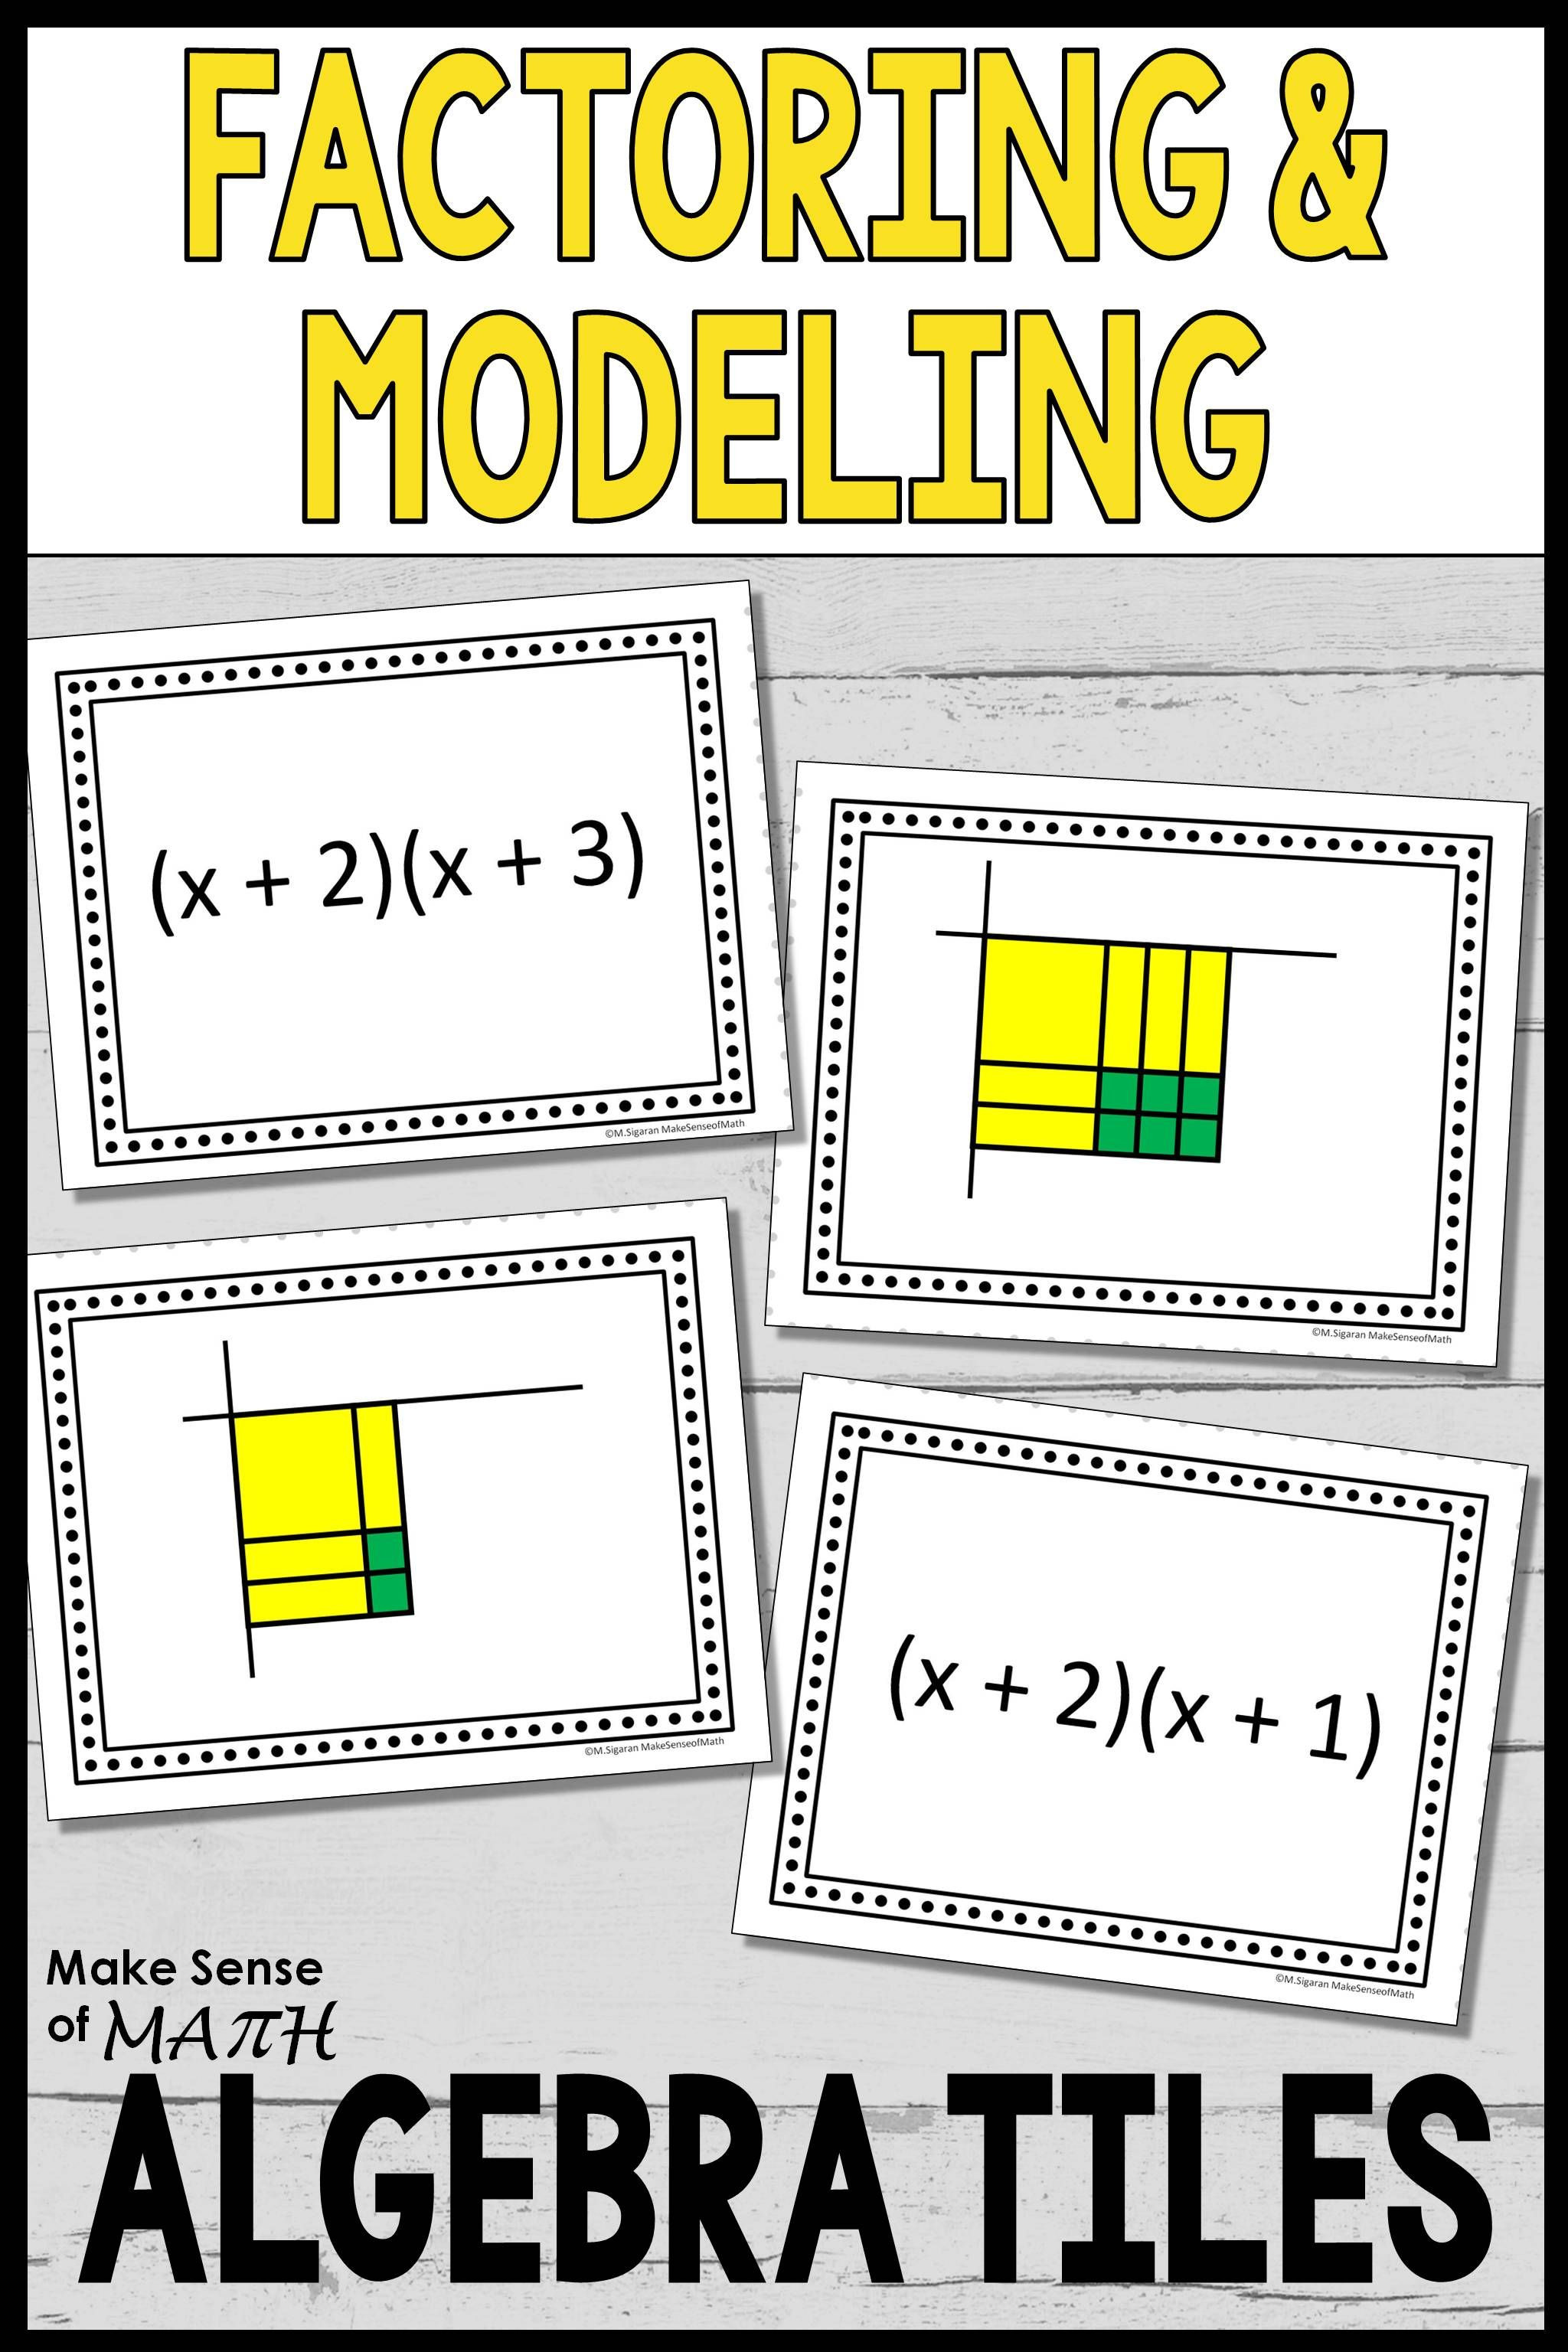 Algebra Tiles Worksheets 6th Grade Factors and Models with Algebra Tiles Task Cards